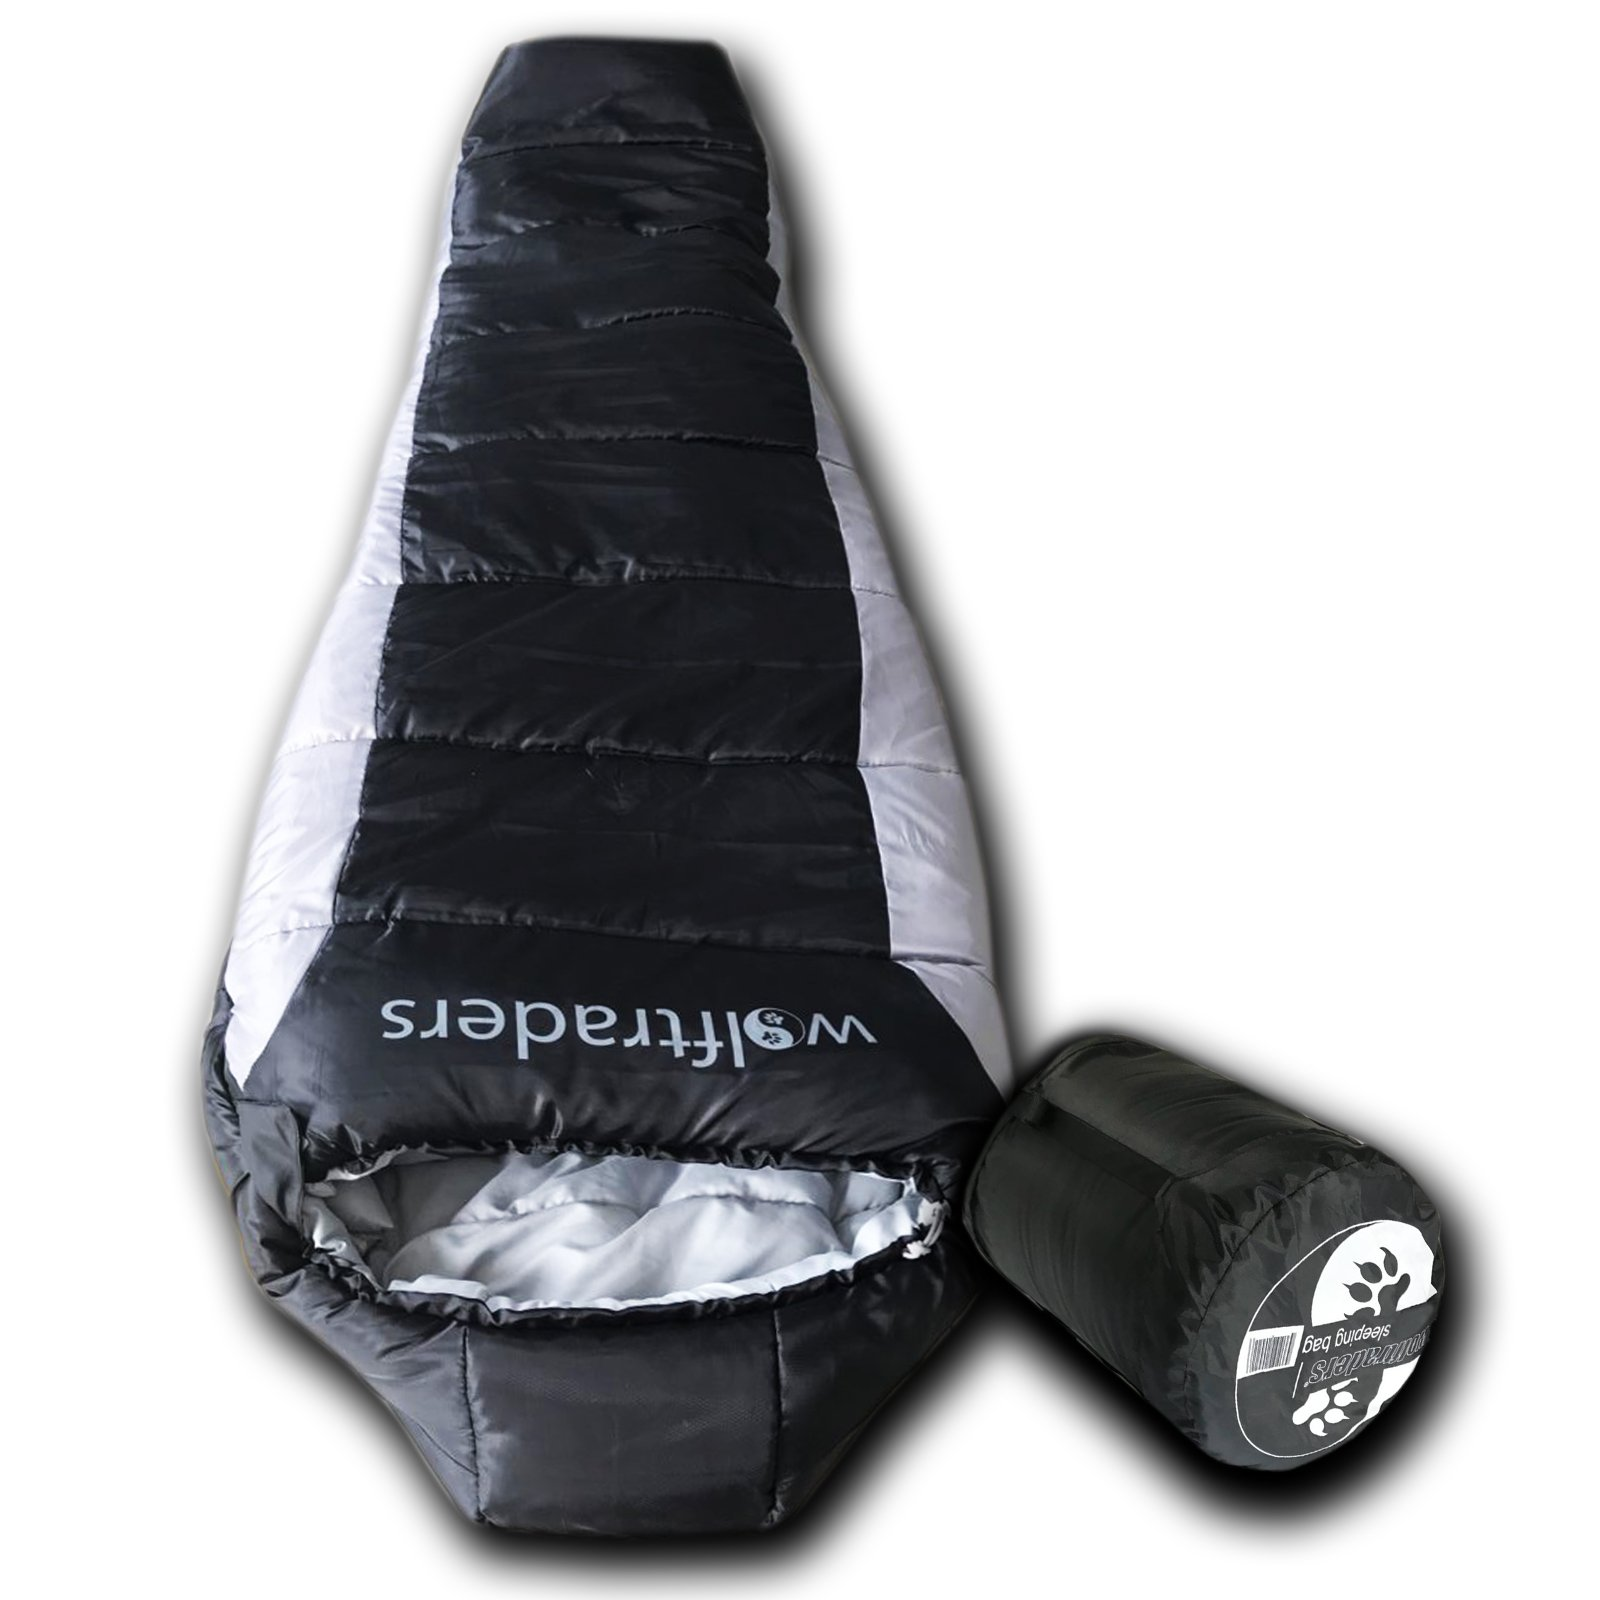 Wolftrders LoNewolf -20 Degree Lightweight Synthetic Mummy Sleeping Bag by Wolftraders Inc